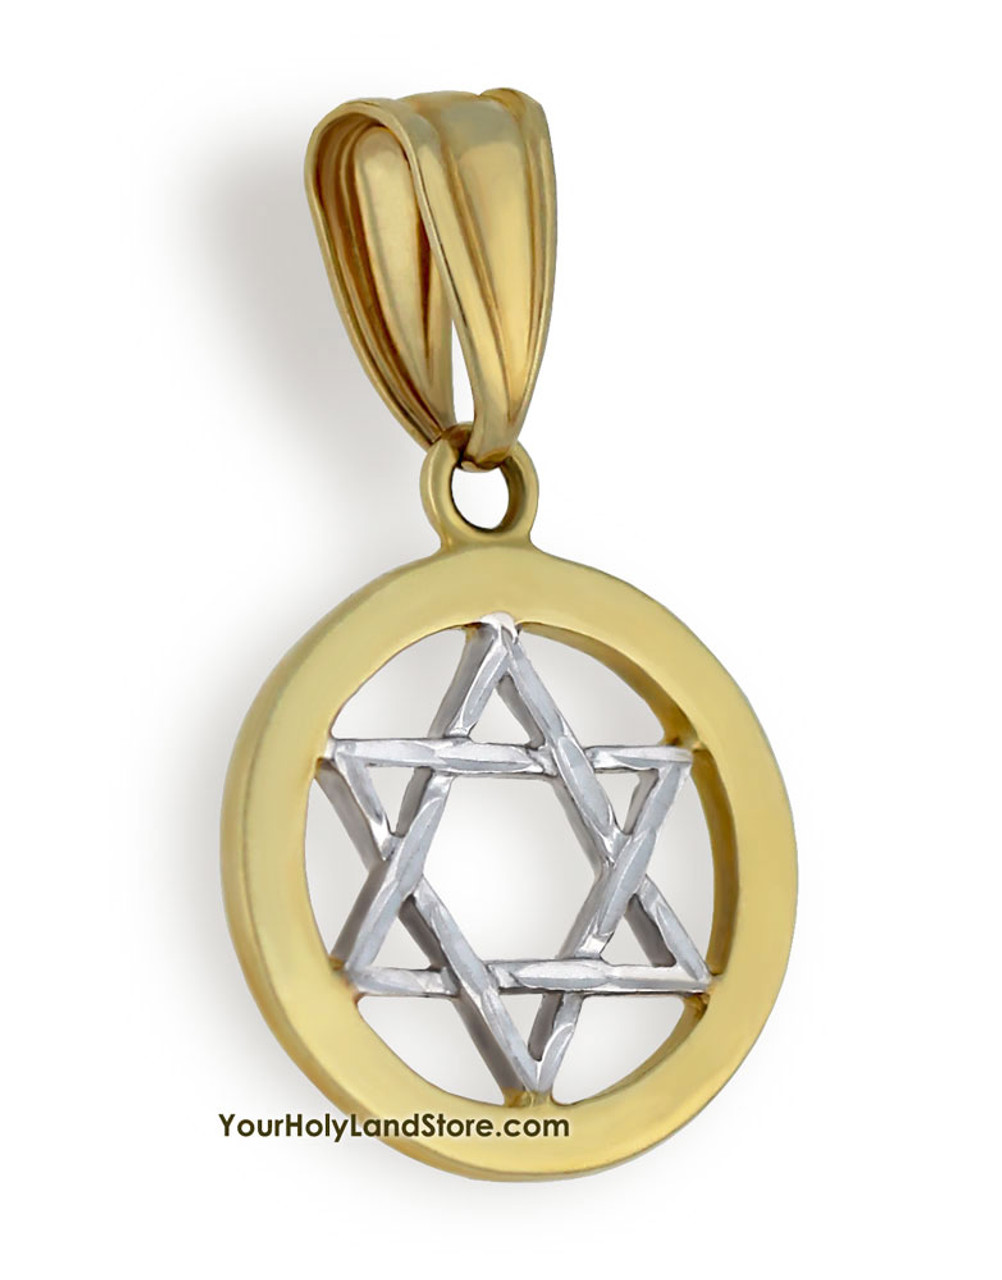 Buy 10k two tone gold star of david pendant free shipping 10k two tone gold star of david pendant aloadofball Image collections